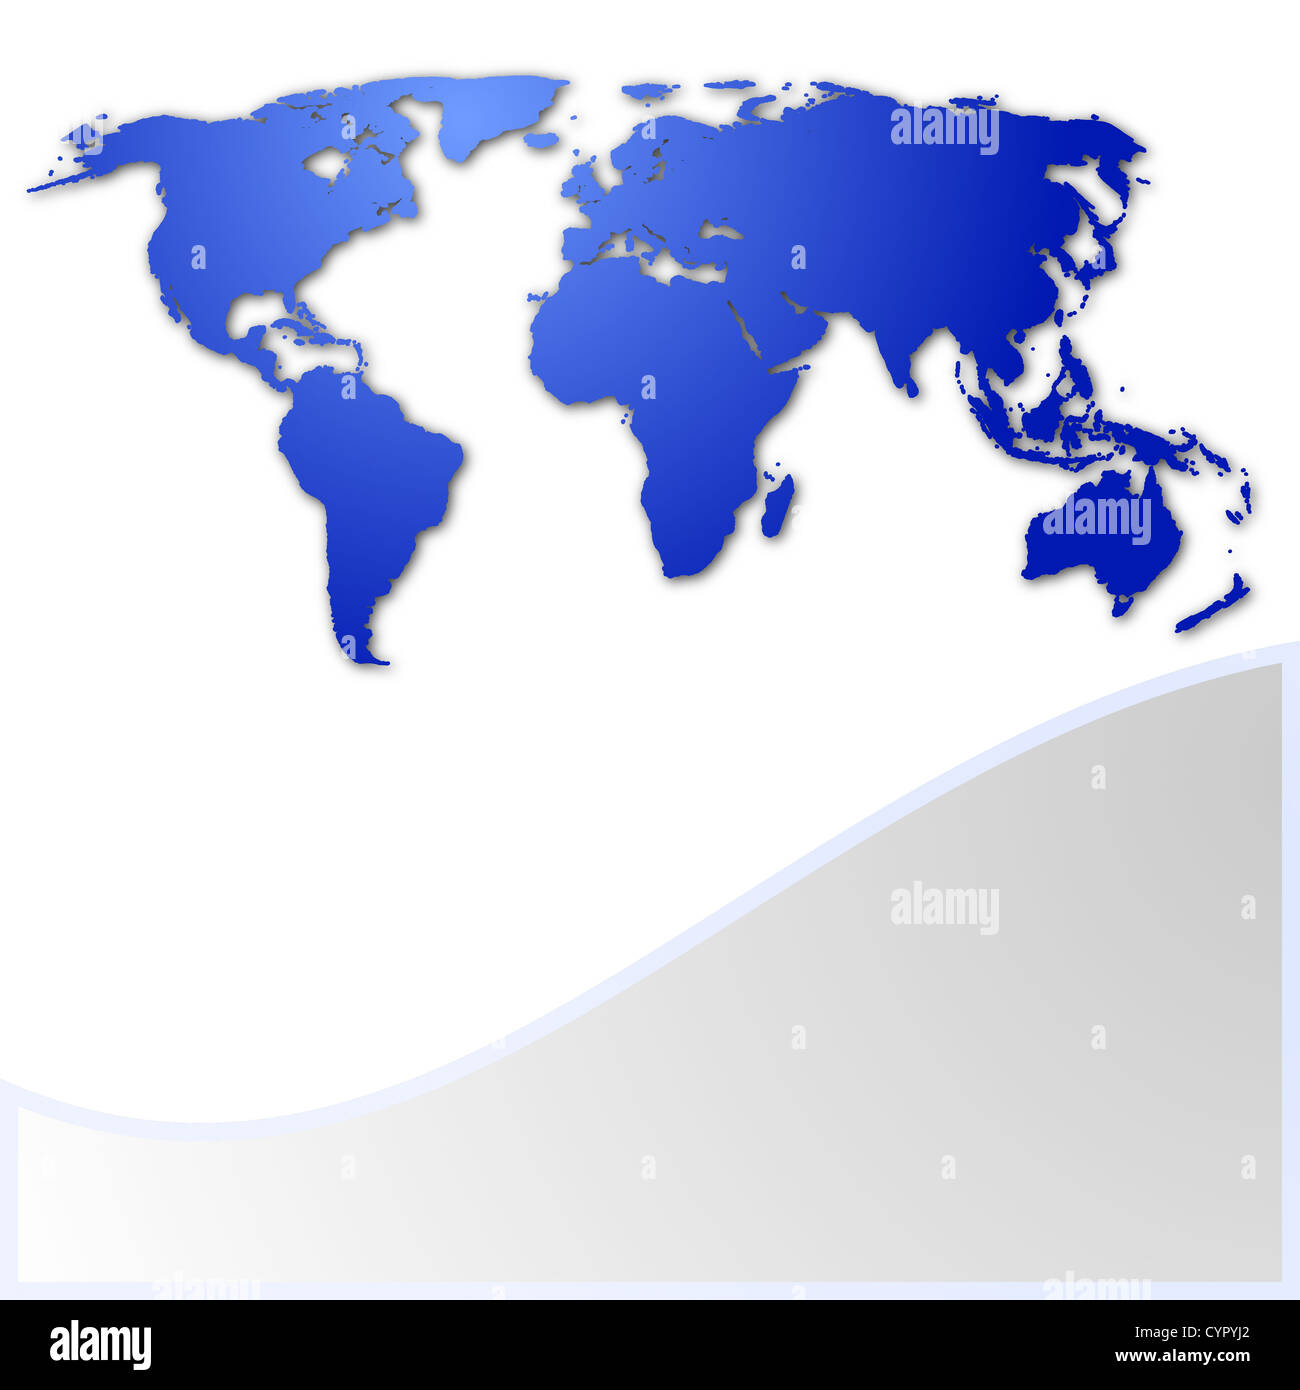 World map business card with copyspace for text message stock photo world map business card with copyspace for text message colourmoves